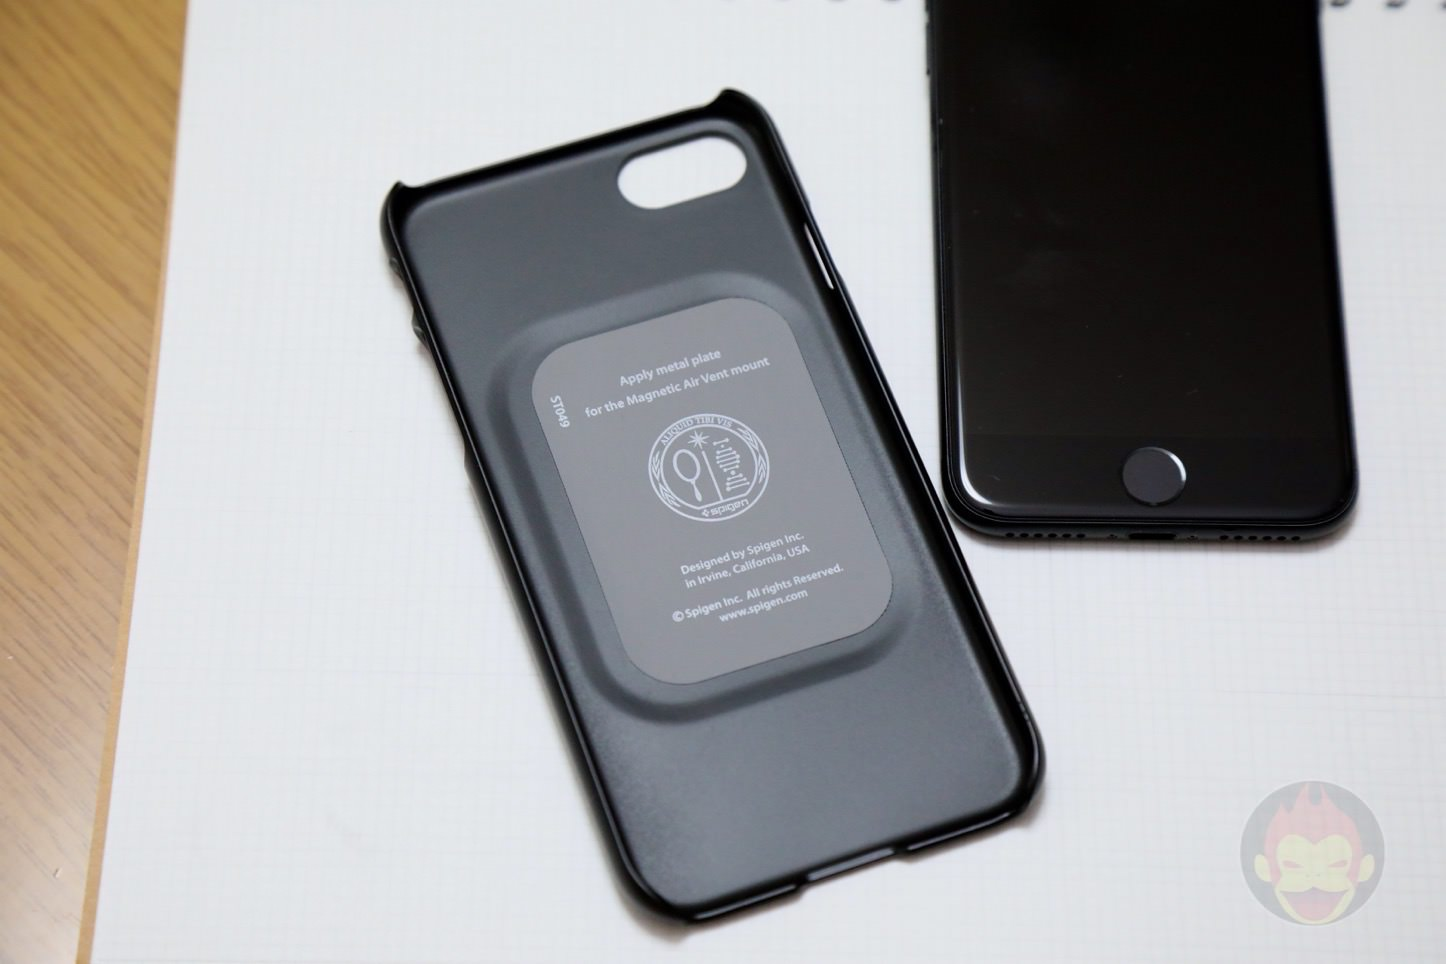 iPhone-7-Thin-Fit-Case-02.jpg